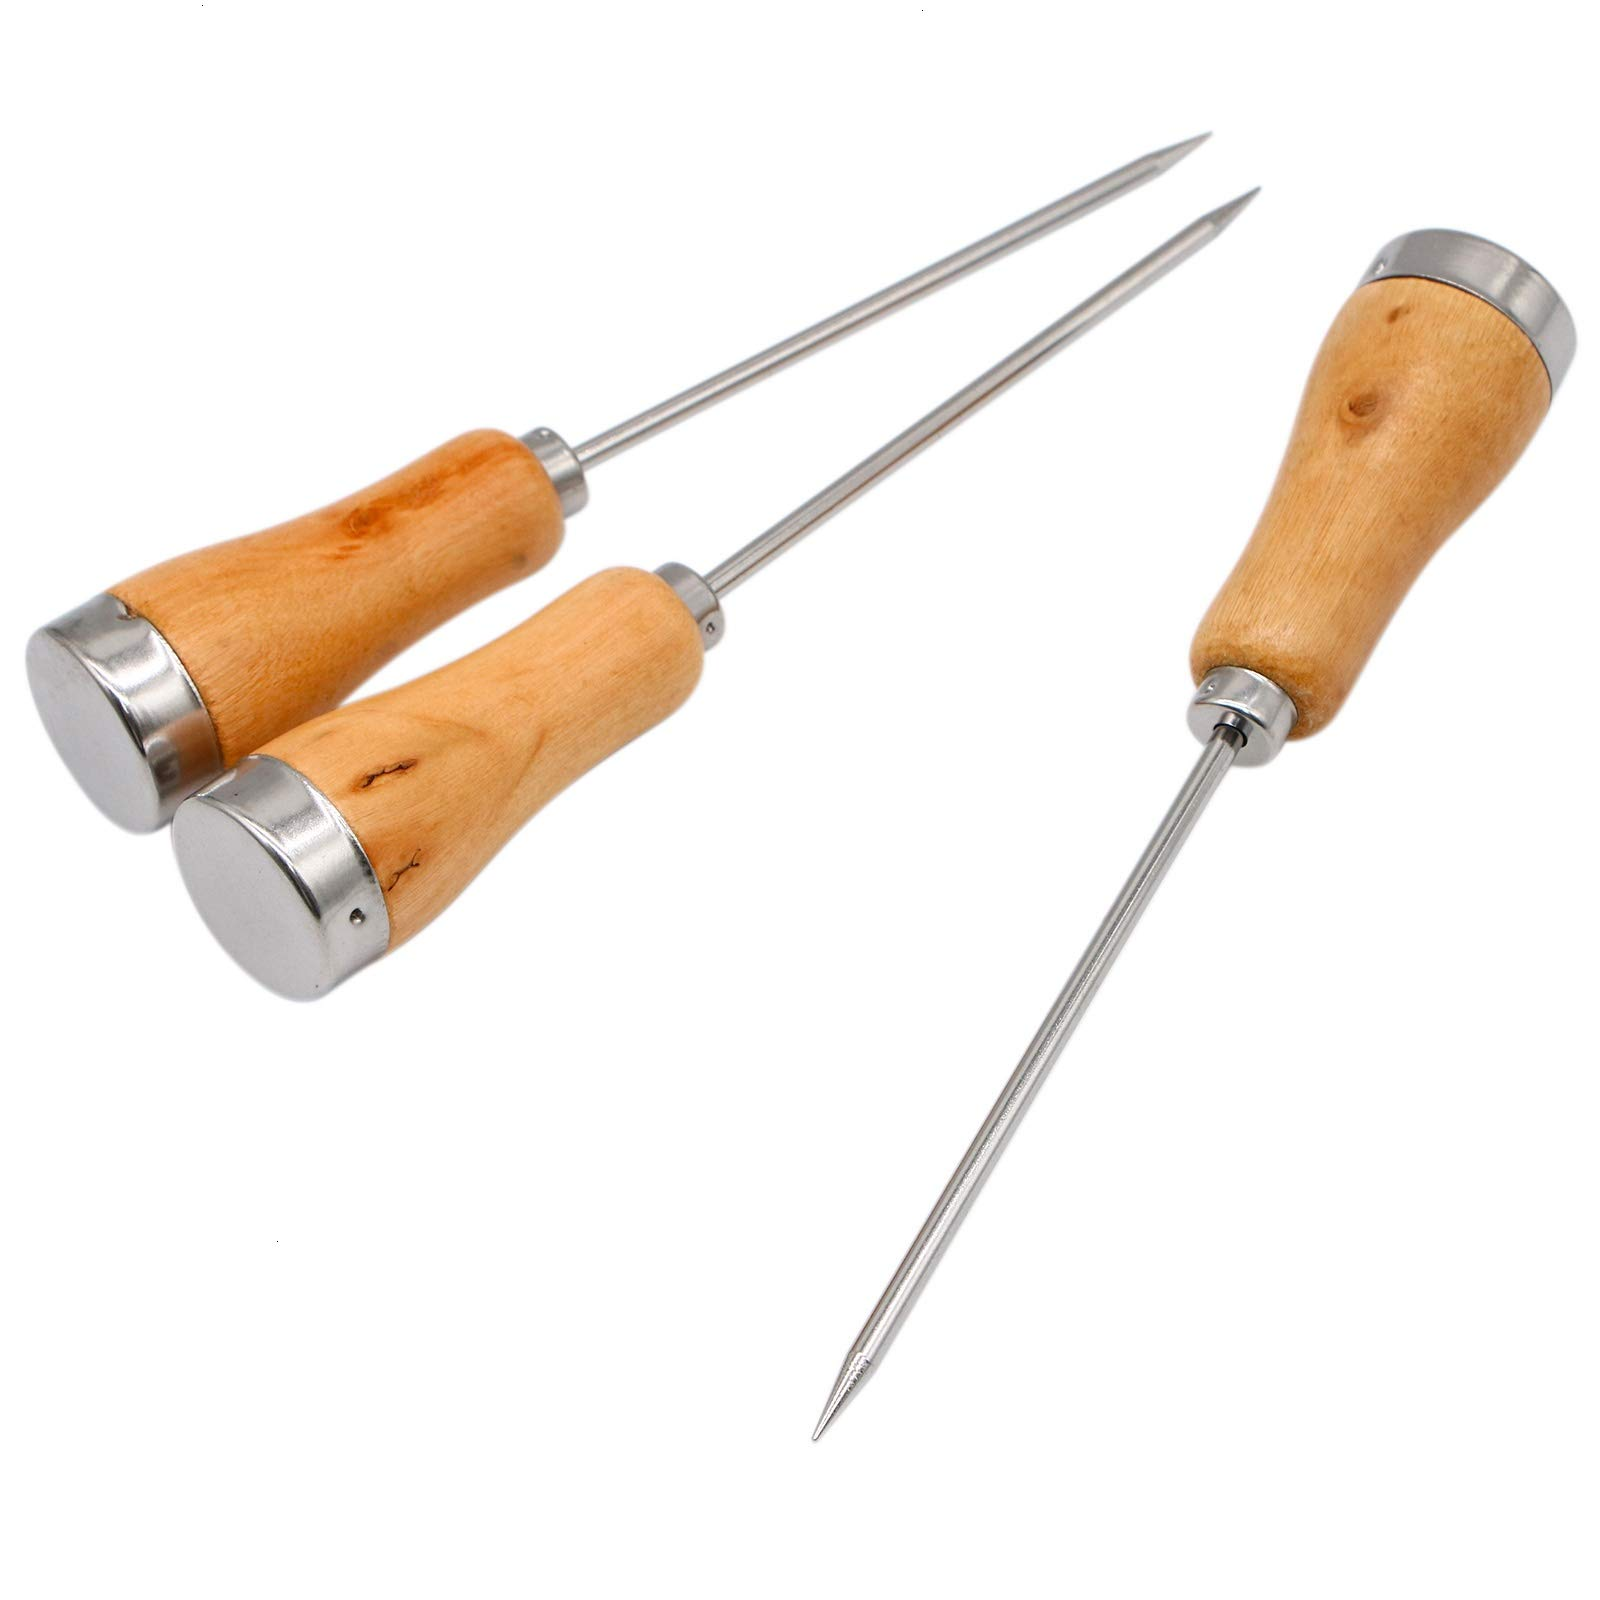 AQUEENLY Stainless Steel Ice Pick with Safety Wooden Handle for Kitchen, Bar, 8.6 Inches, 3 PCS by AQUEENLY (Image #3)